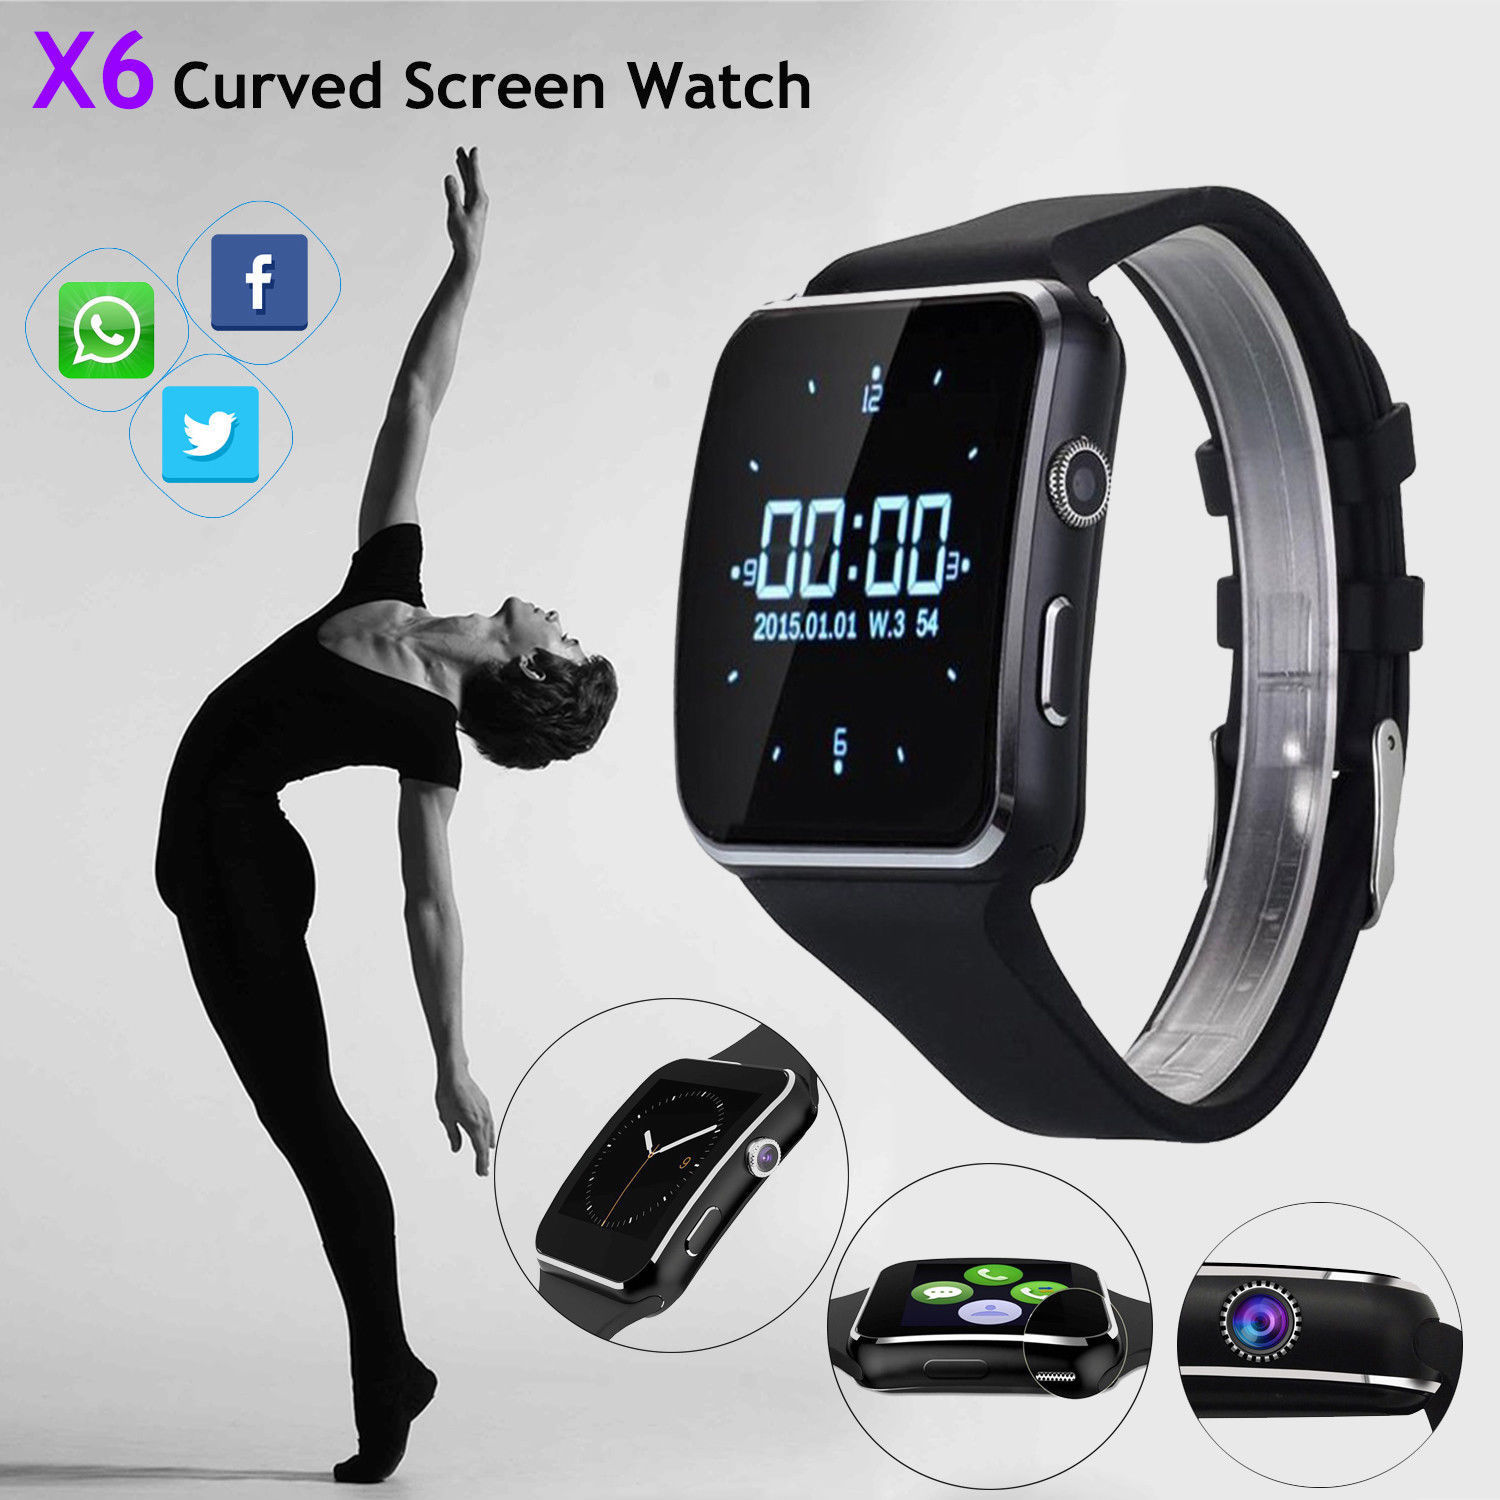 X6 Smart Watch Waterproof Bluetooth Support SIM Card Camera Fitness Phone Watches Men Women Smartwatch 2019 Version-in Smart Watches from Consumer Electronics on AliExpress